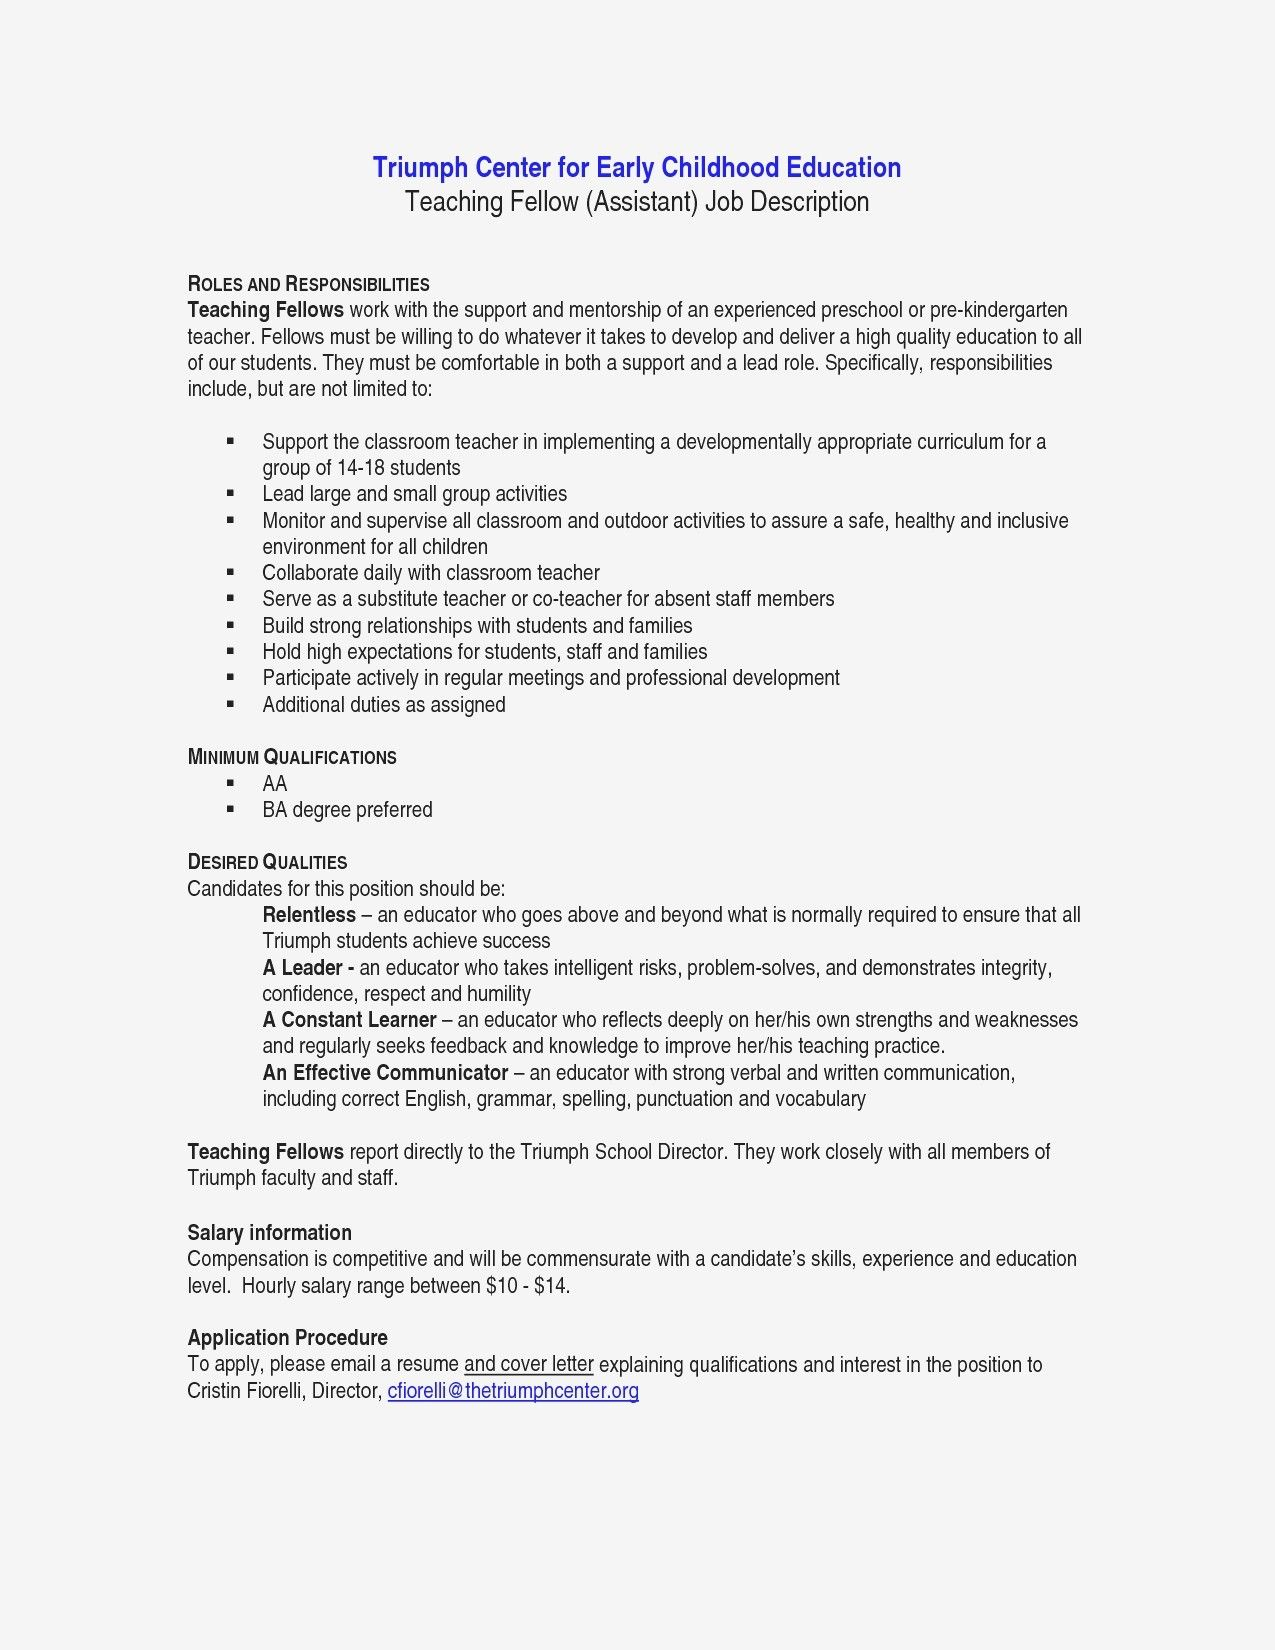 New Letter Of Interest For Teaching Position With Images